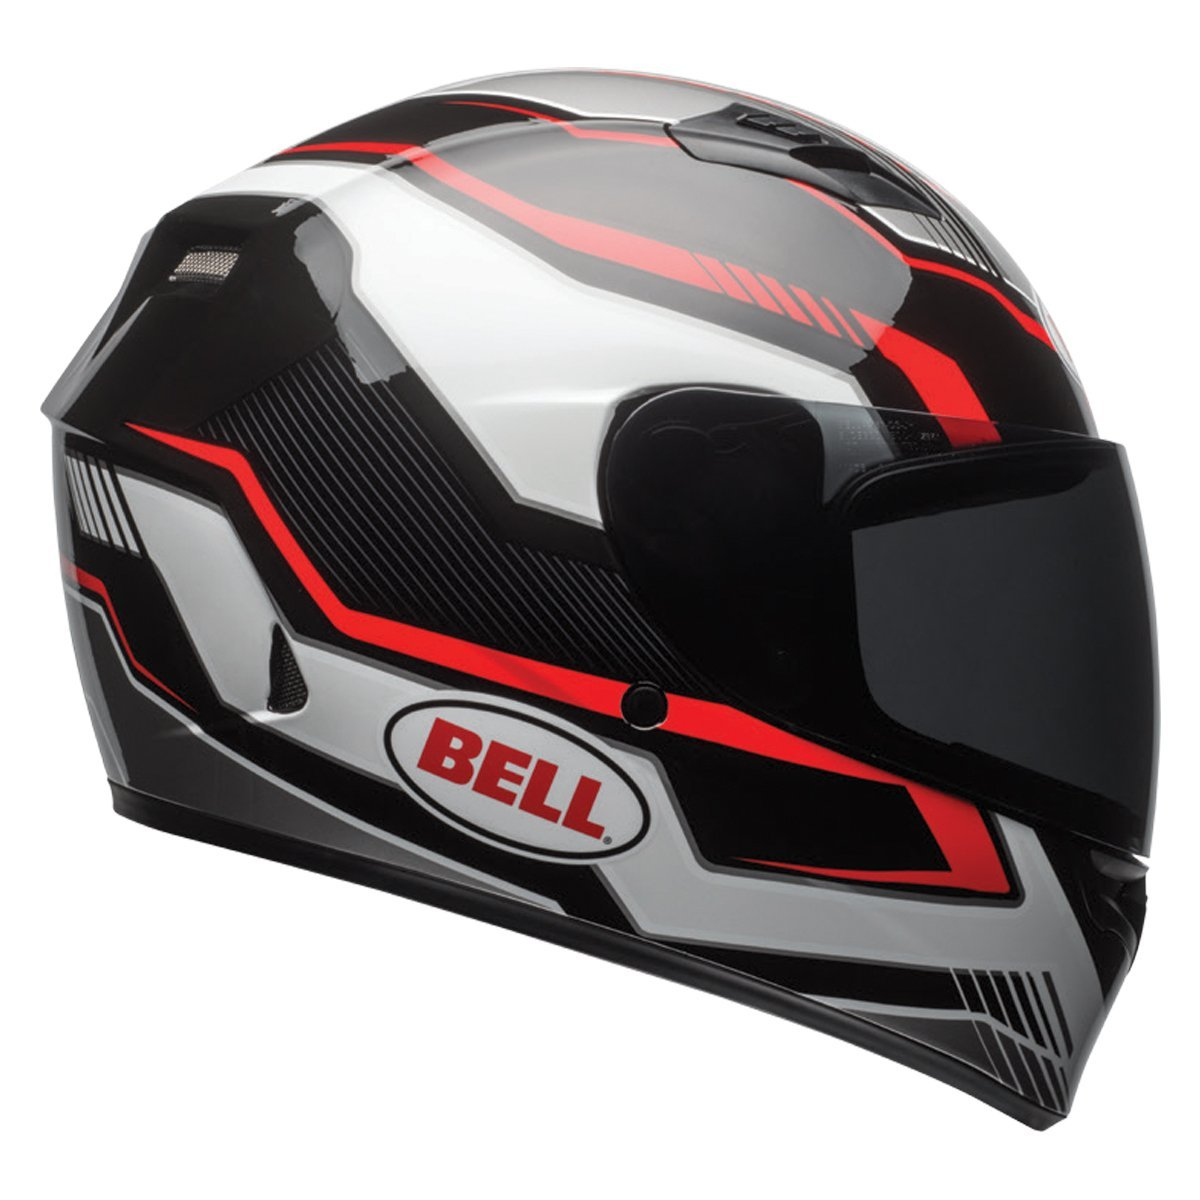 Bell Qualifier Unisex-Adult Full Face Street Helmet with Anti-Fog, Anti-Scratch & UV Protected Sheild Available in 16 Colors and 7 Sizes